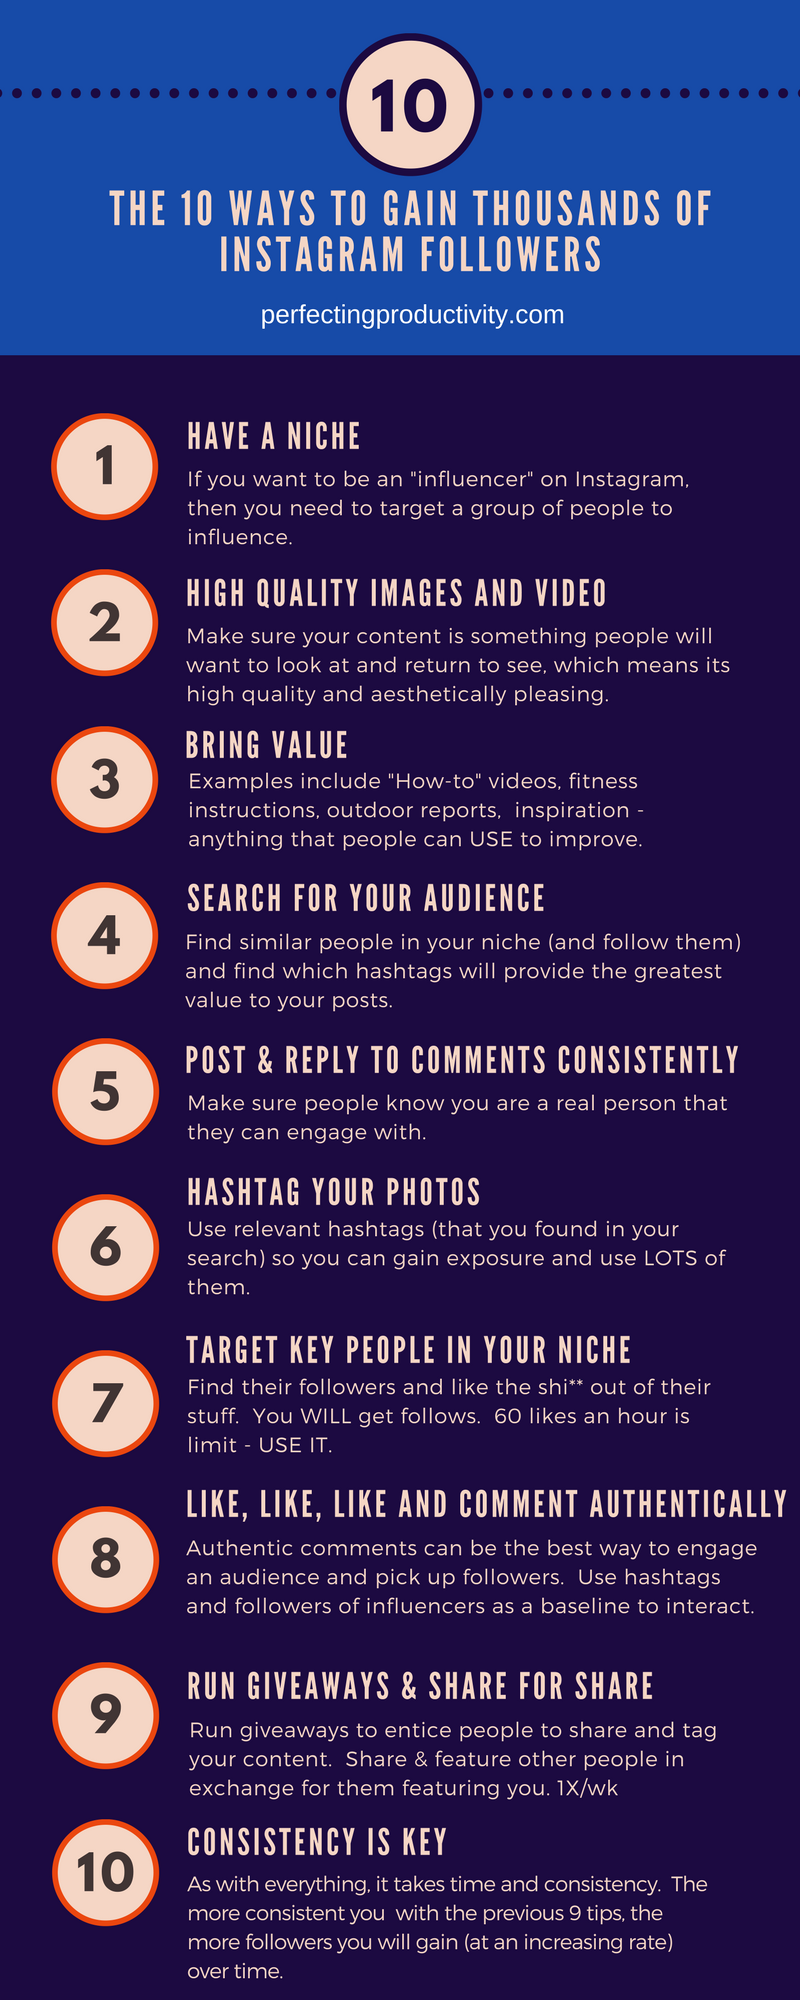 How To Gain Instagram Followers Fast In 2020 The Ultimate Guide Nicole Stone Gain Instagram Followers Instagram Followers Instagram Marketing Tips